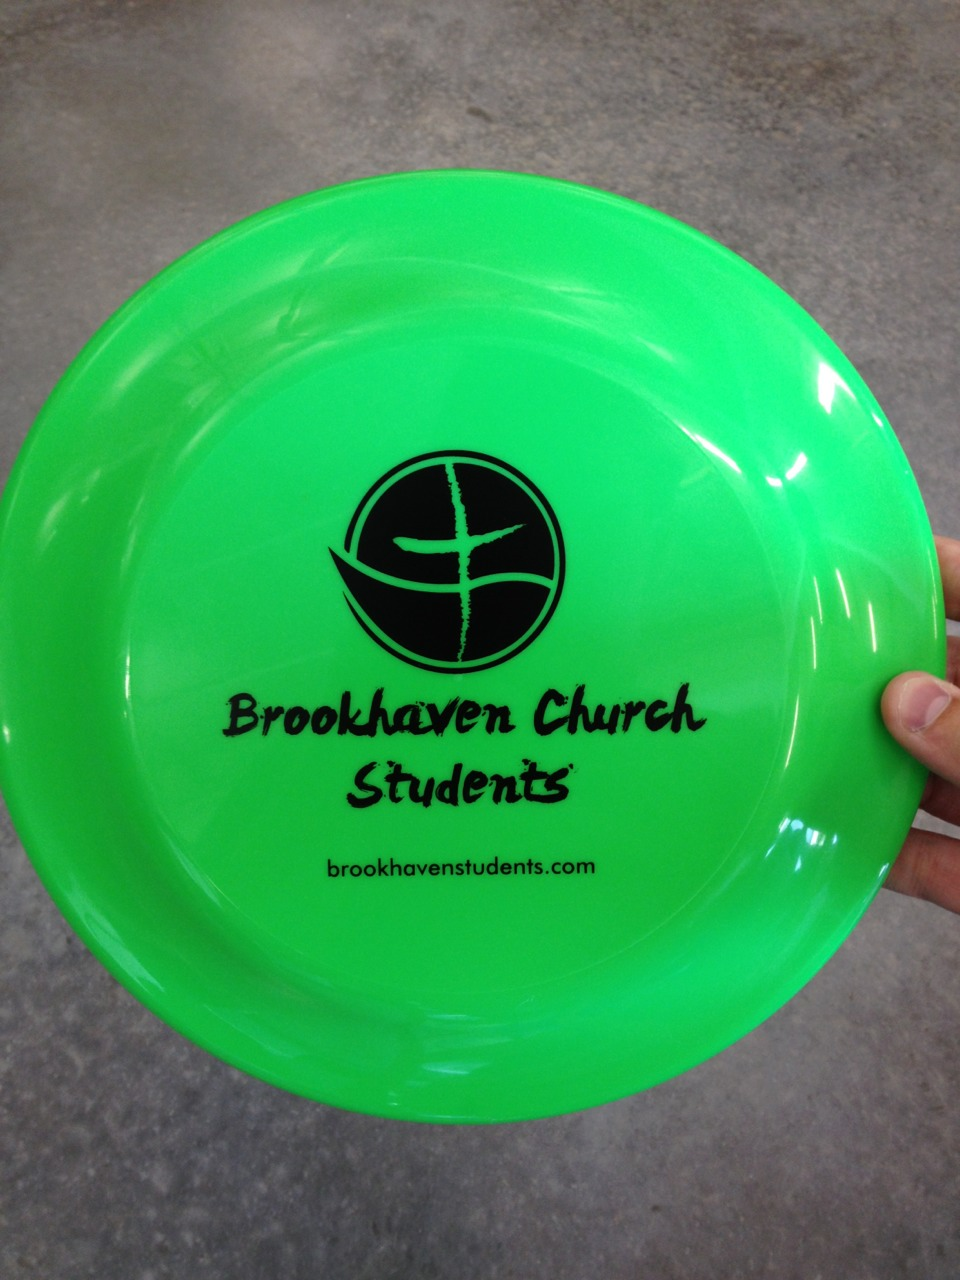 Who's ready for Frisbee??